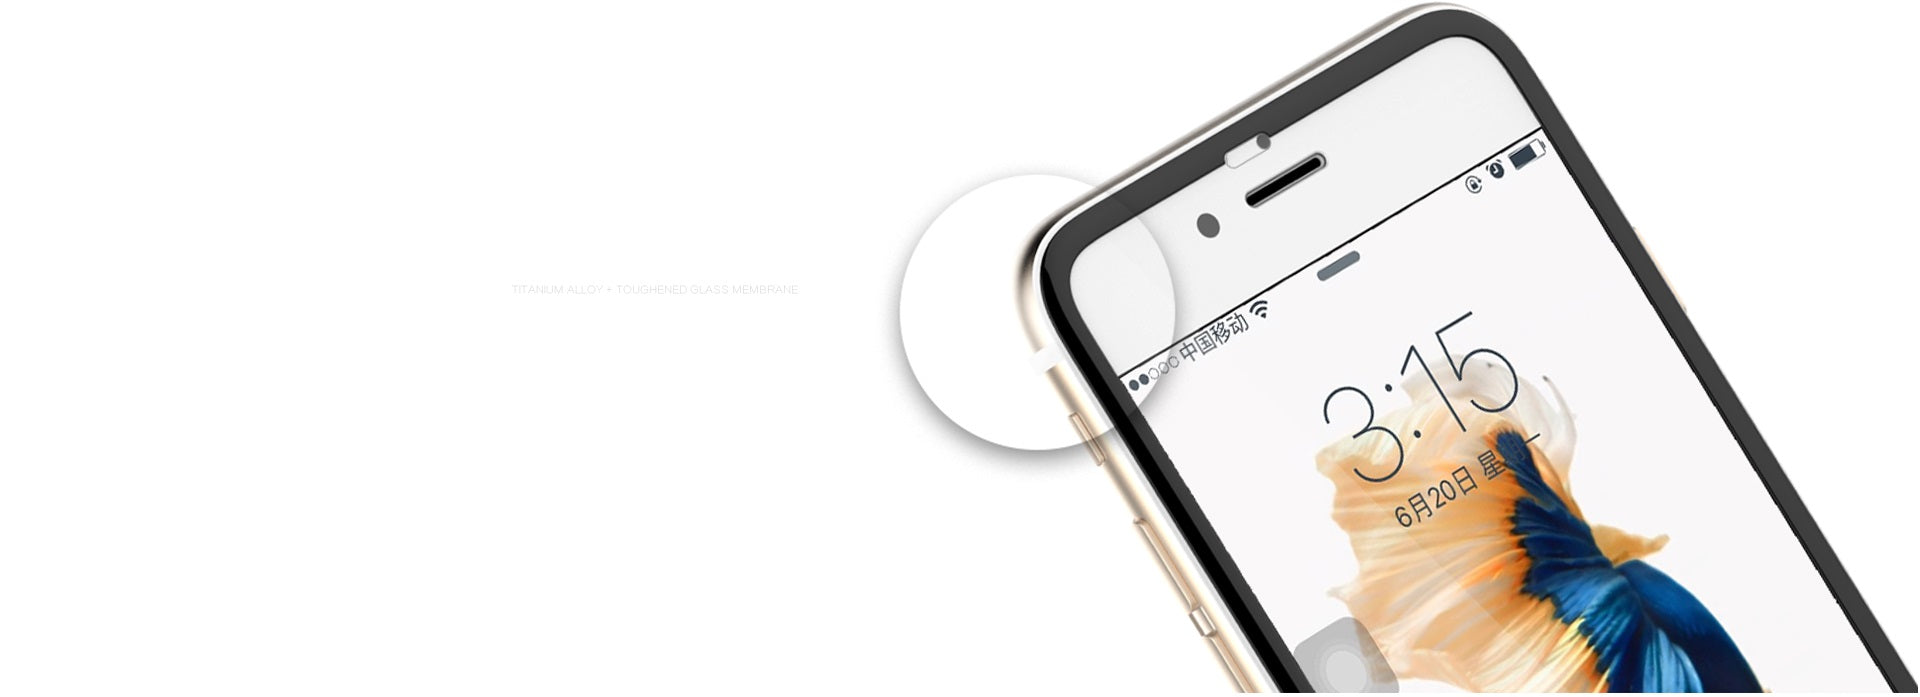 REMAX Official Store -Tempered Glass Ironwing 3D iPhone 6/6S/Plus